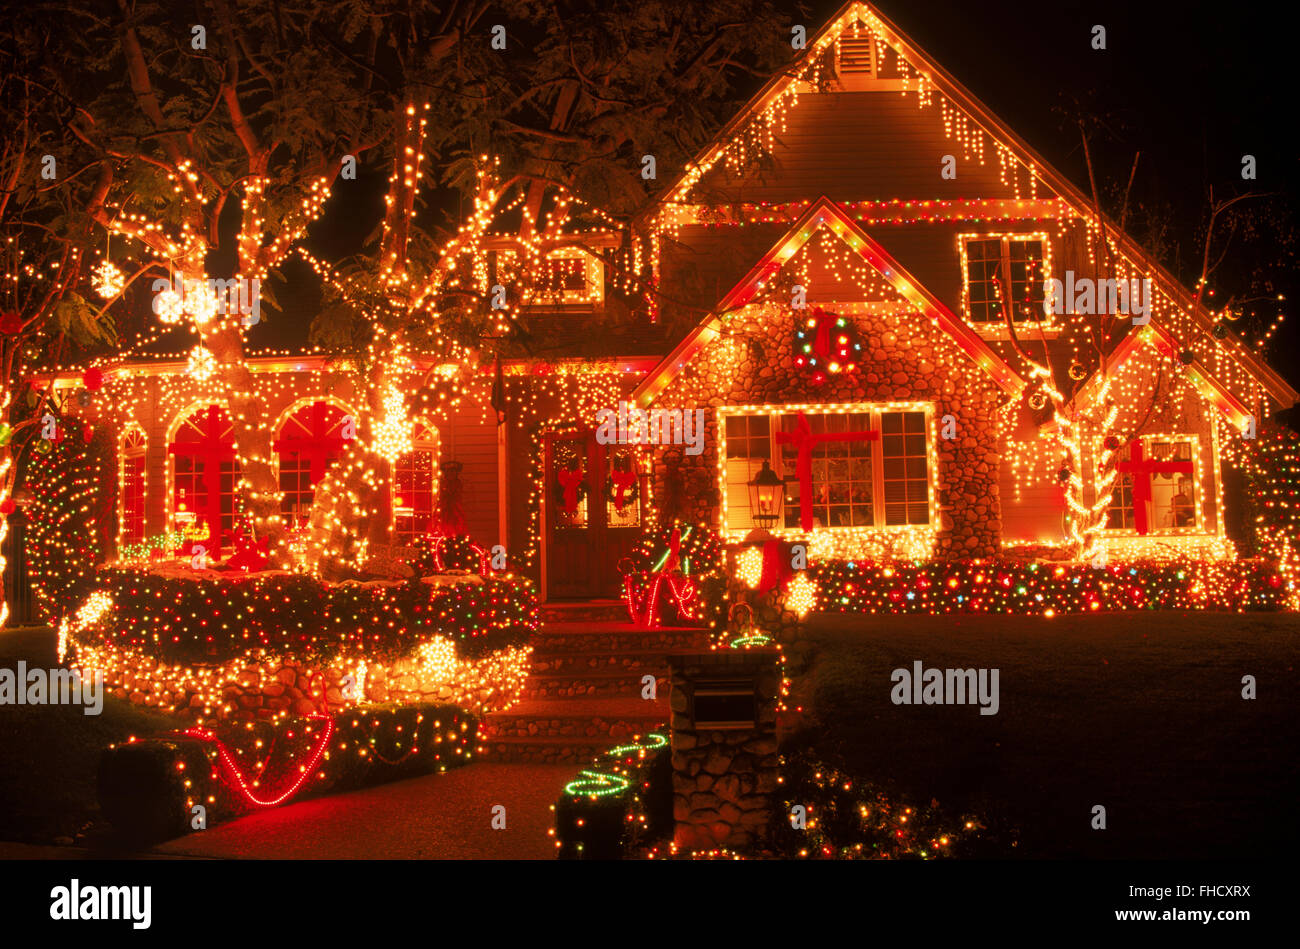 outdooryard decorationschristmas decor outdoor christmas light with front yard decoration ideas decorations